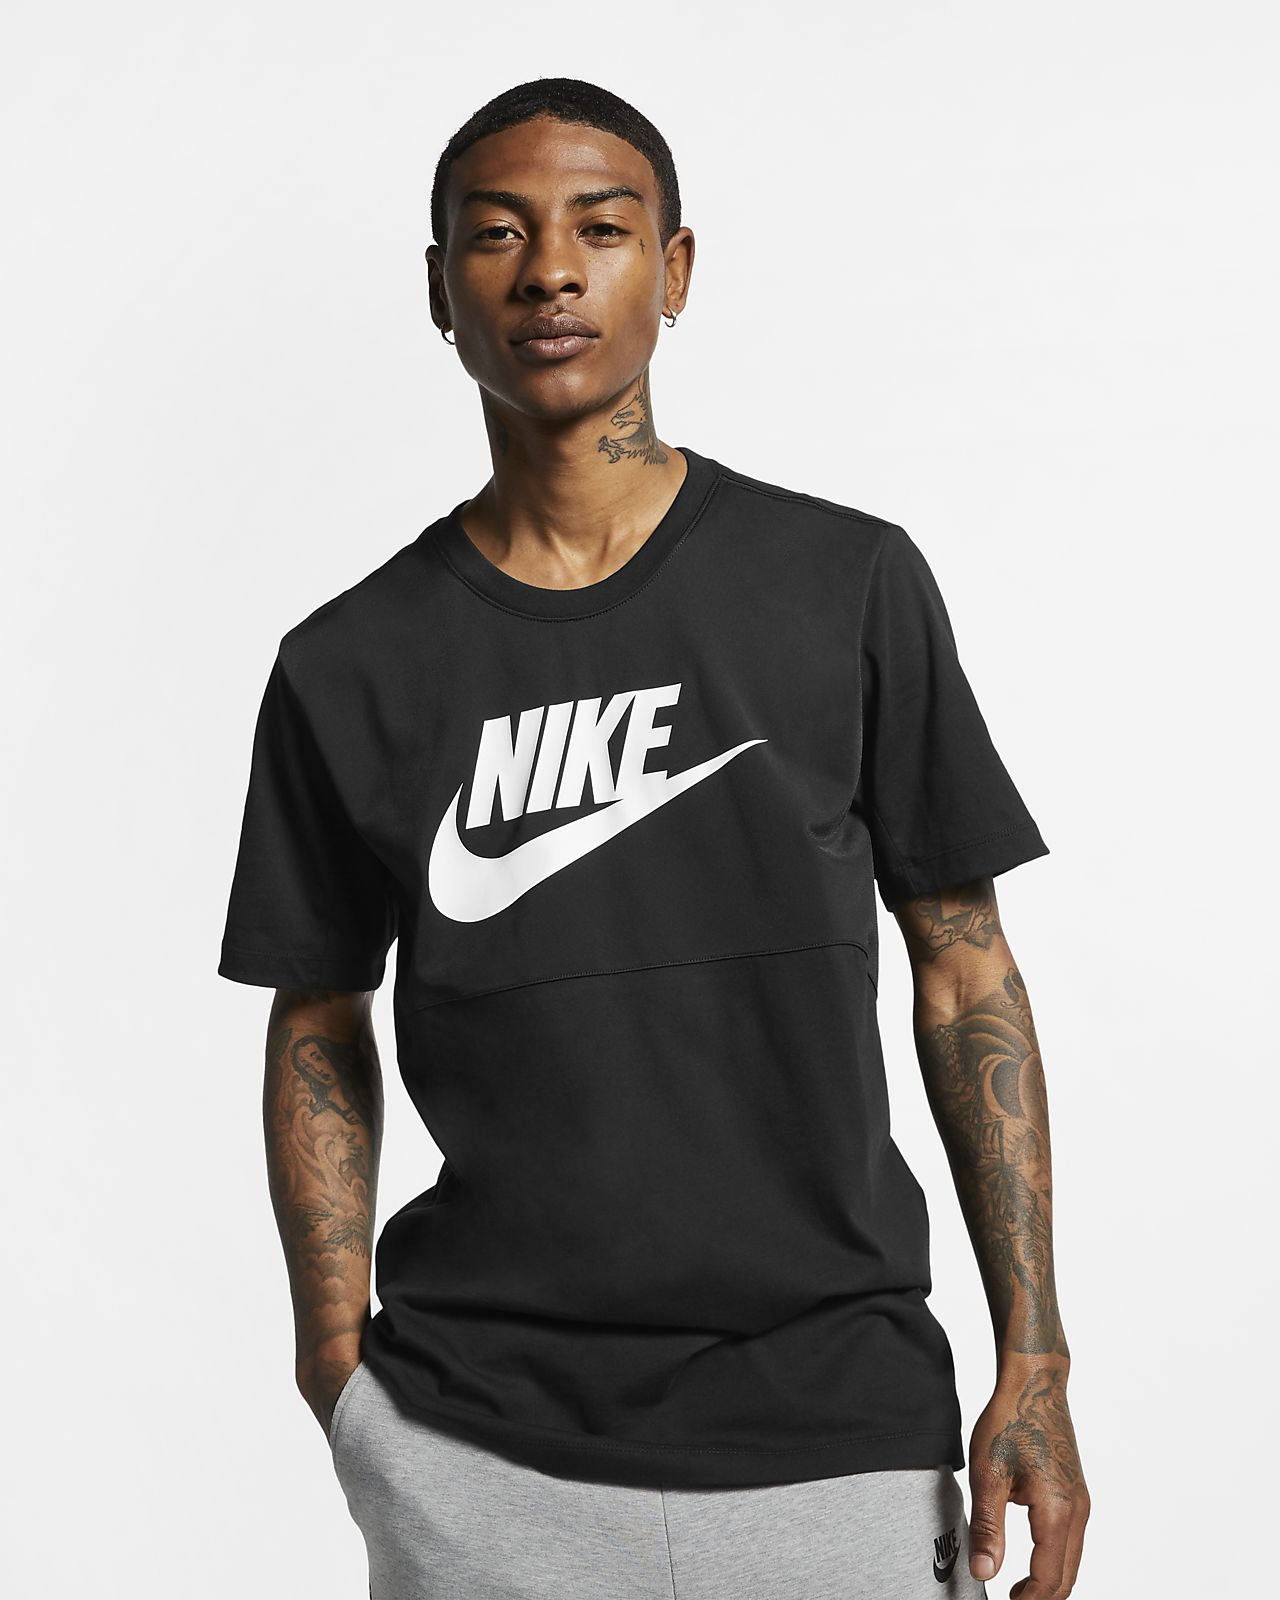 Nike Sportswear Men's Top